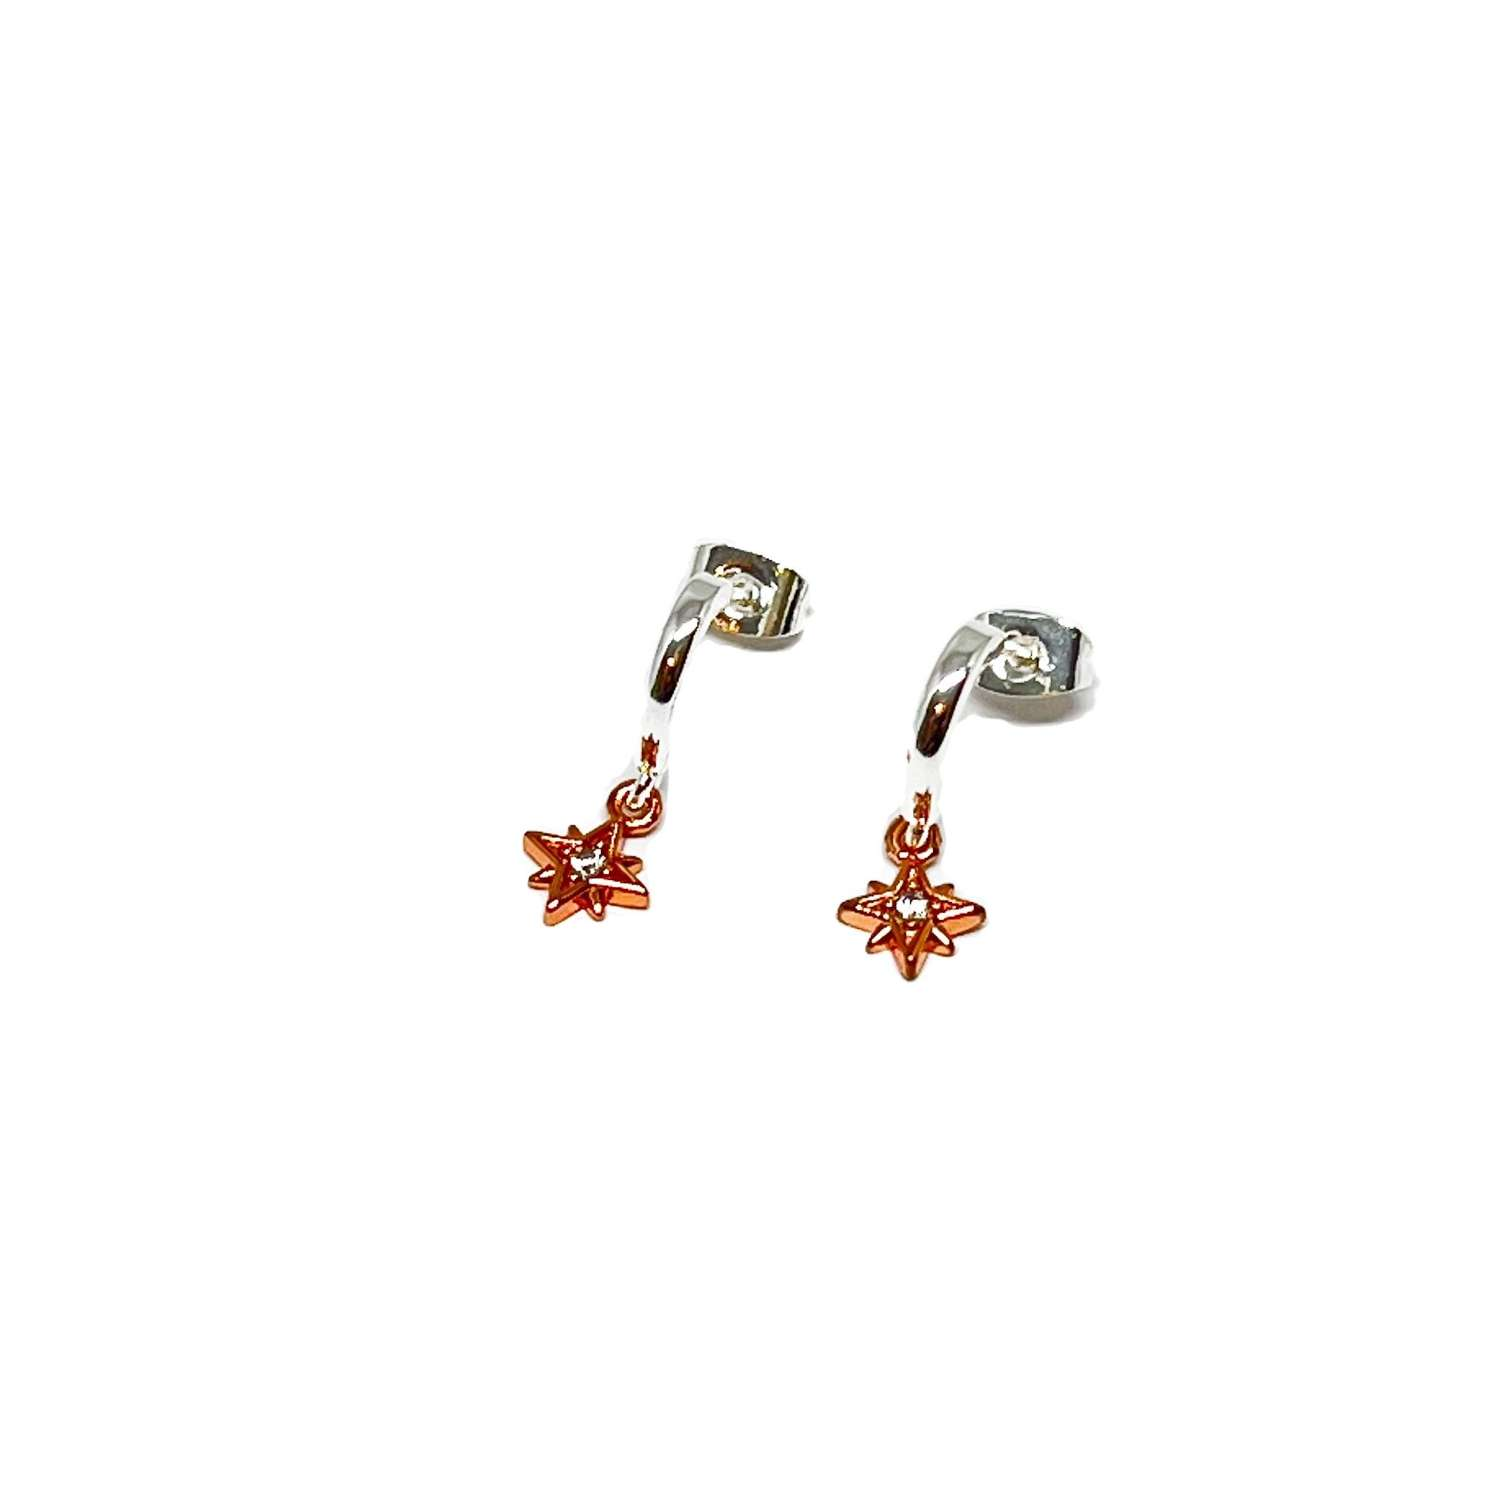 Zuri Star Sterling Silver Earrings - Rose Gold